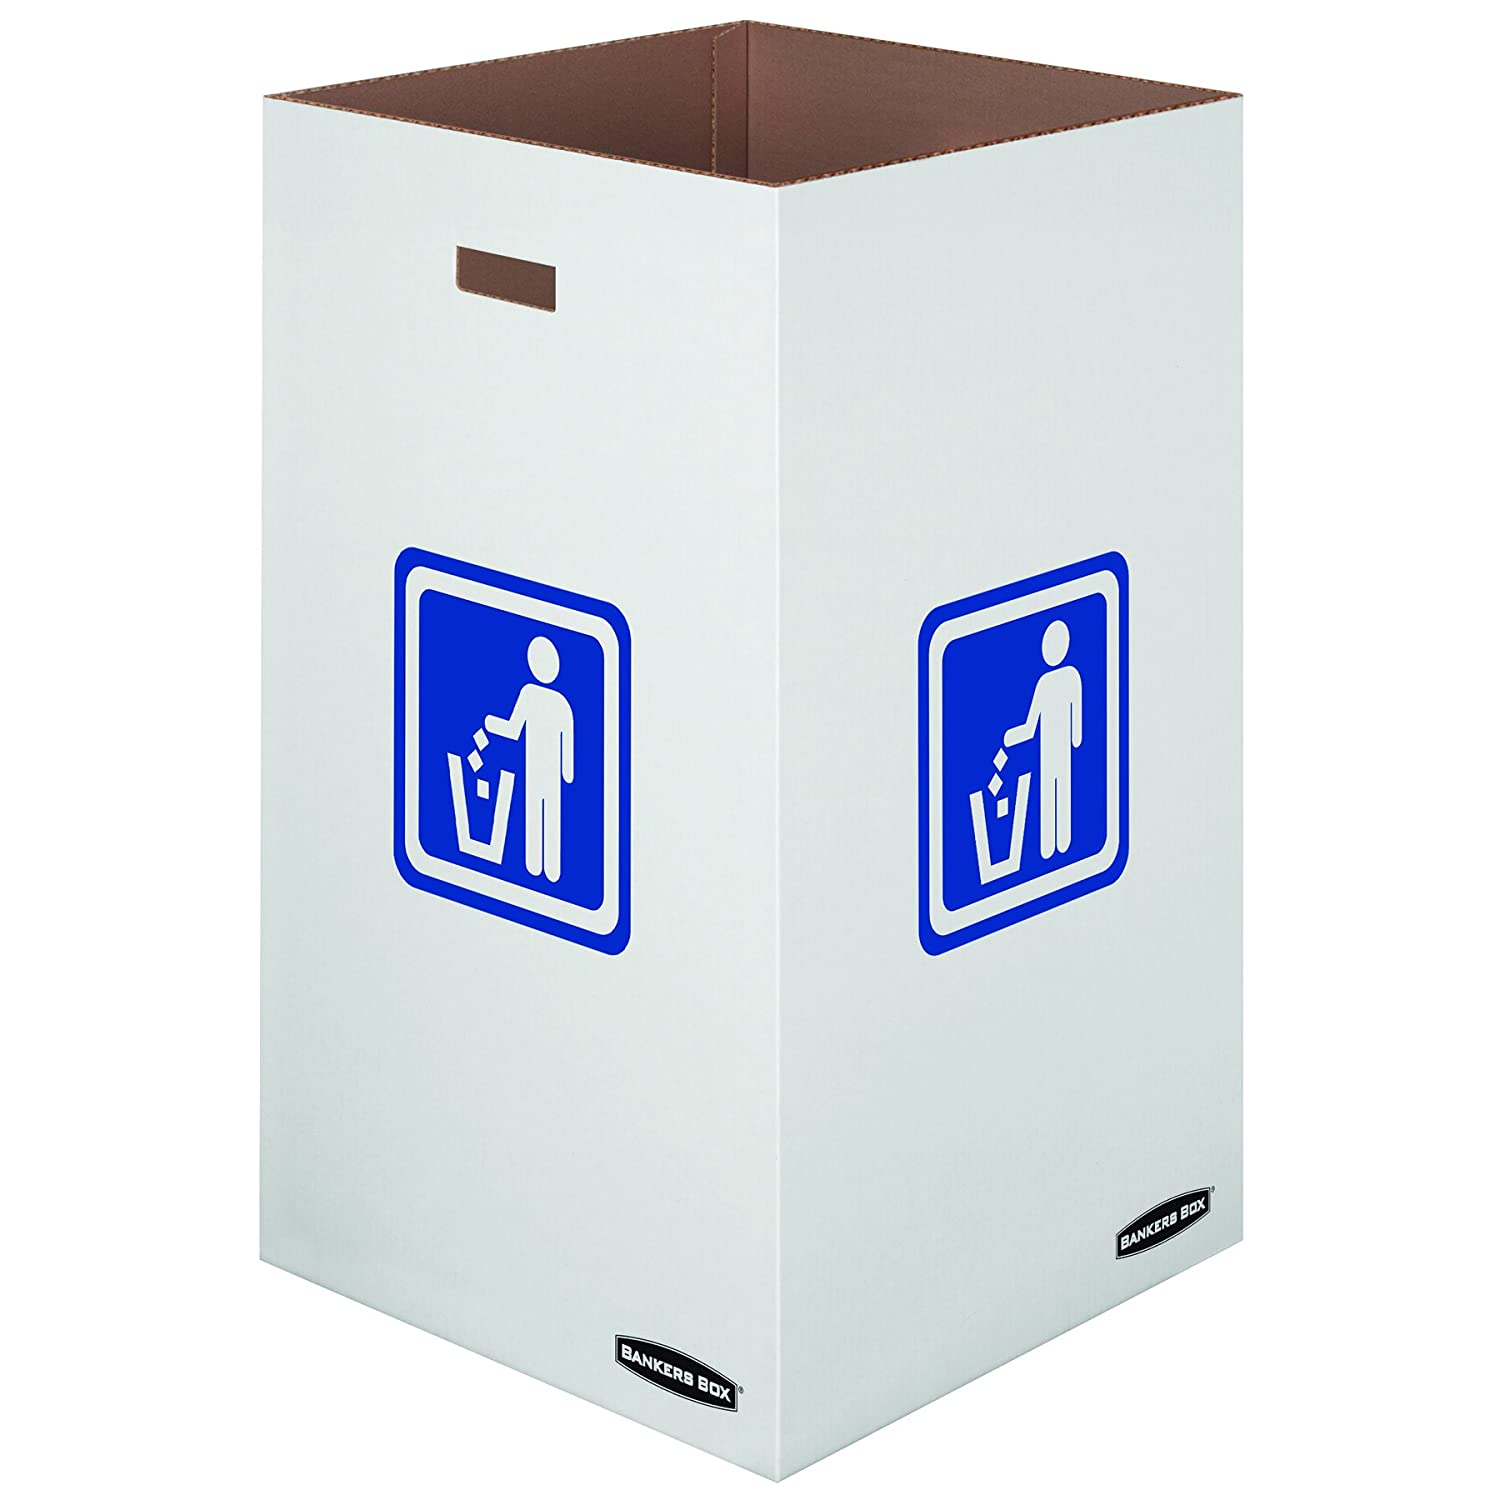 42 Gallon 7320101 10 Each Bankers Box Medium Corrugated Cardboard Trash and Recycling Containers